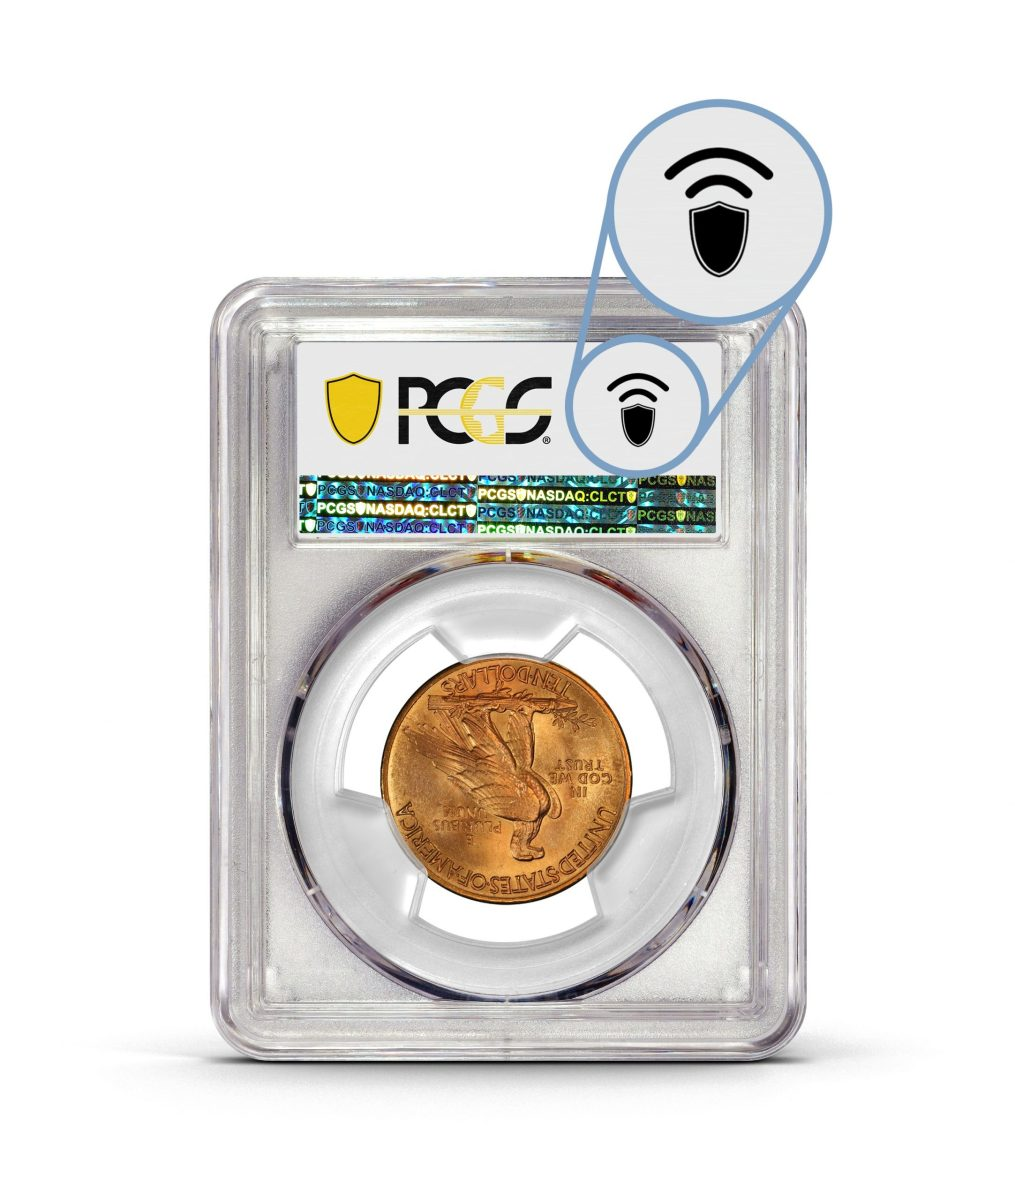 PCGS-graded coin and banknote holders now feature an NFC symbol on the obverse of the label. Coin holders also feature this symbol on the front bottom left of the holder. Image is courtesy of Professional Coin Grading Service.